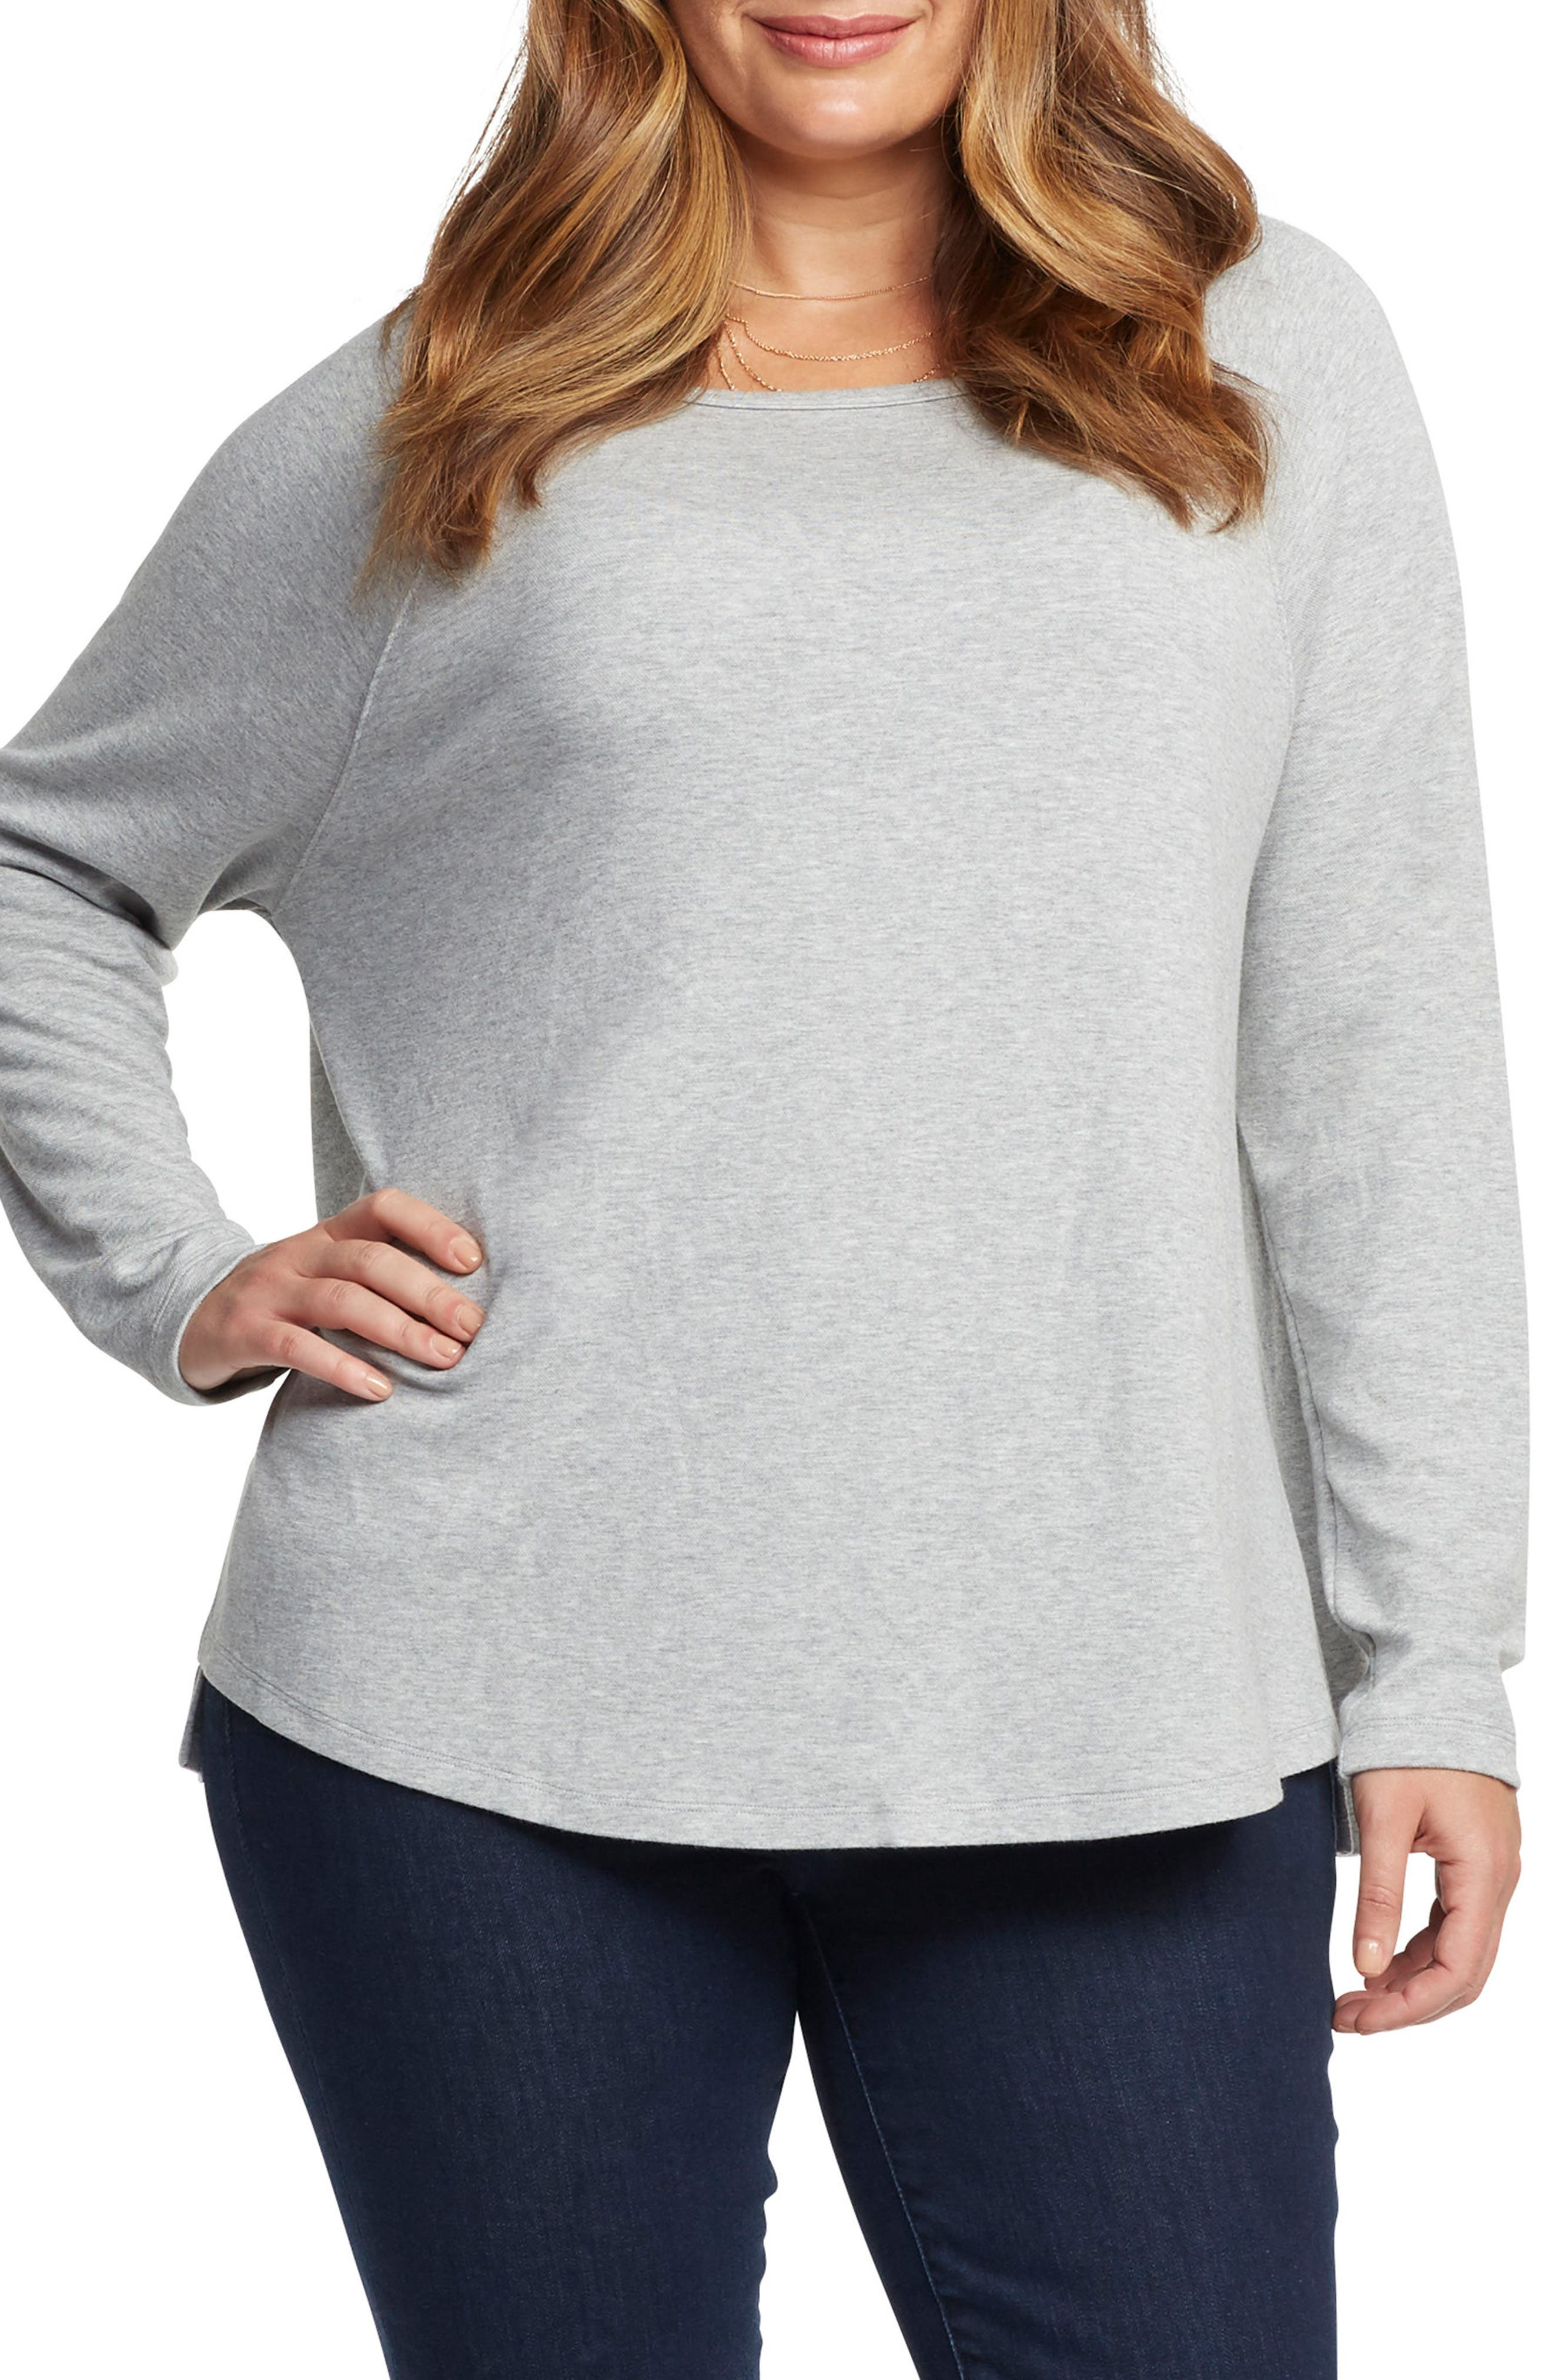 Main Image - Tart Rica Stretch Knit Top (Plus Size)